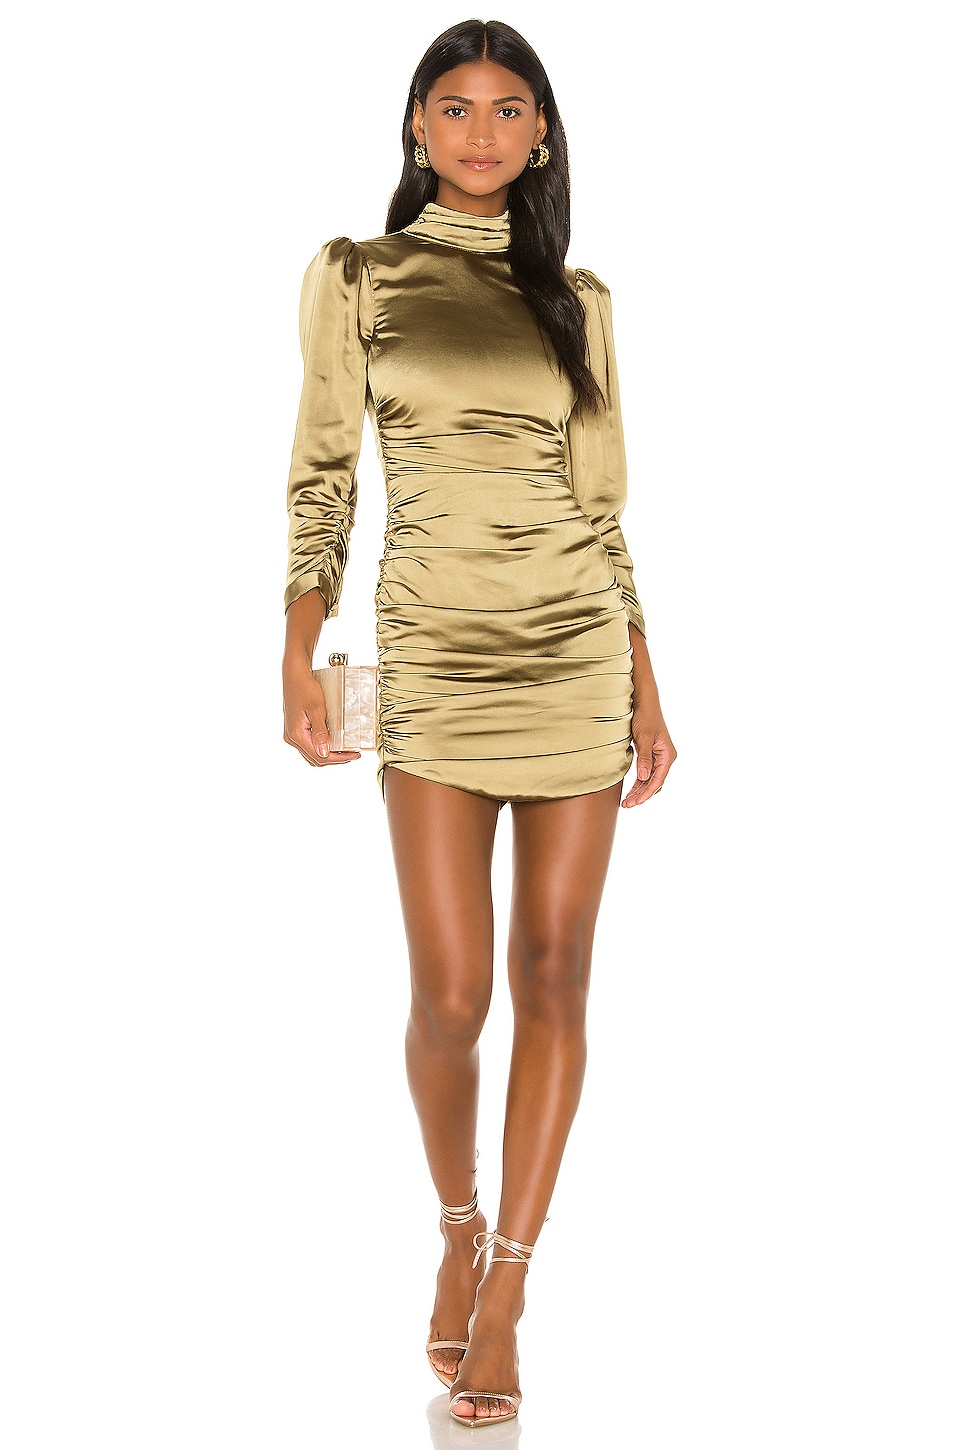 Camila Coelho Viviane Mini Dress in Olive Green